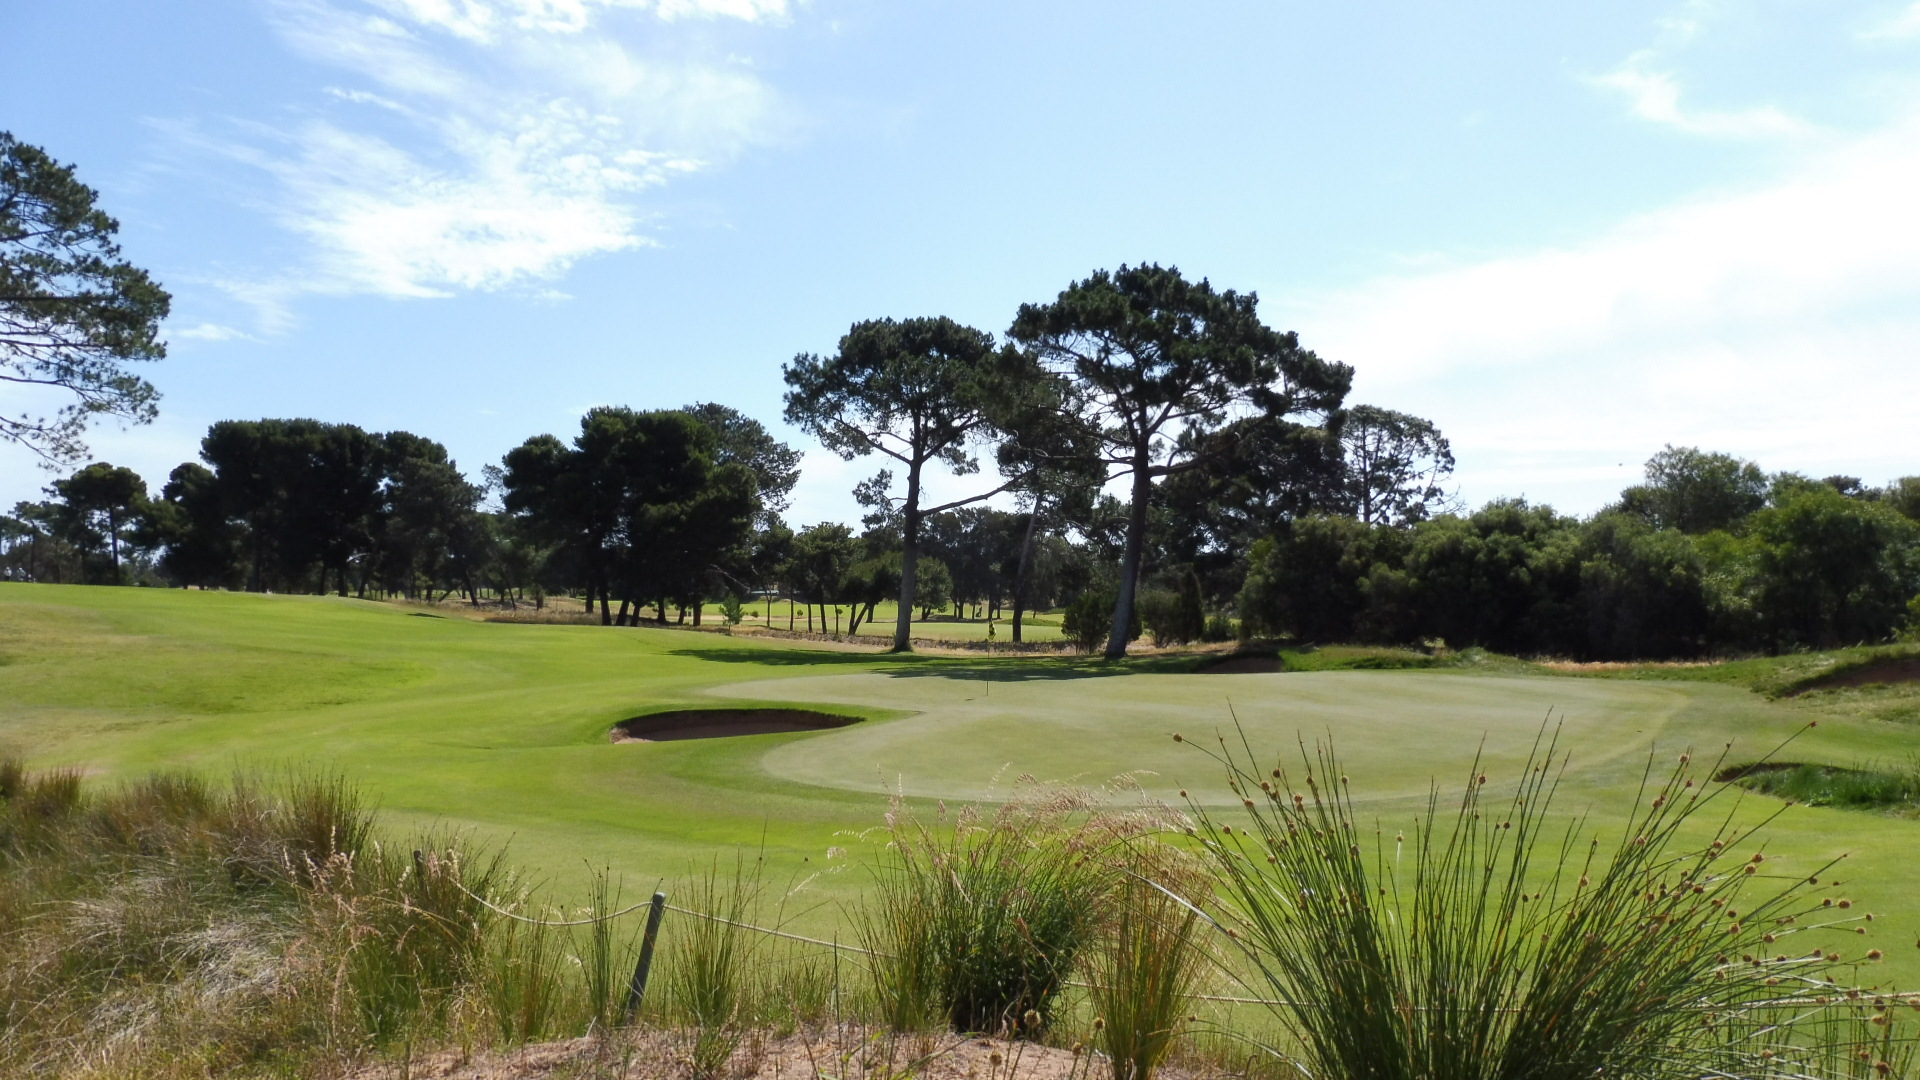 glenelg golf club 10th green aussie golf quest. Black Bedroom Furniture Sets. Home Design Ideas